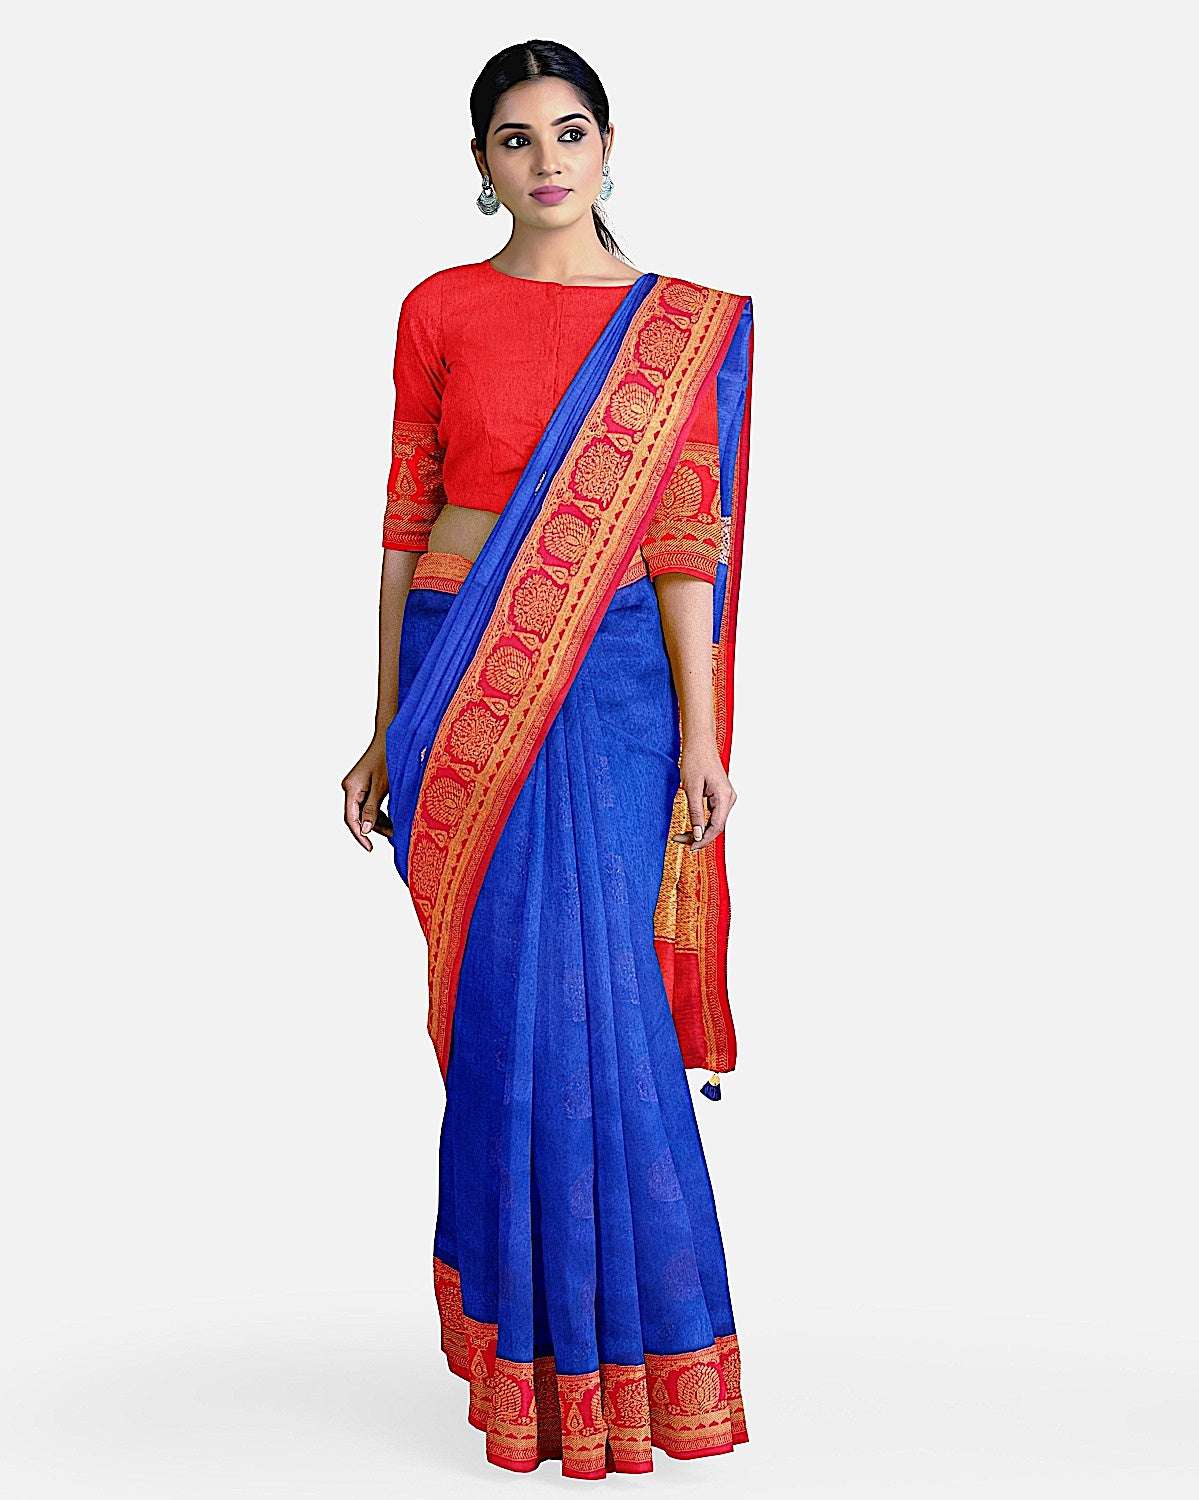 Blue and red dupion silk